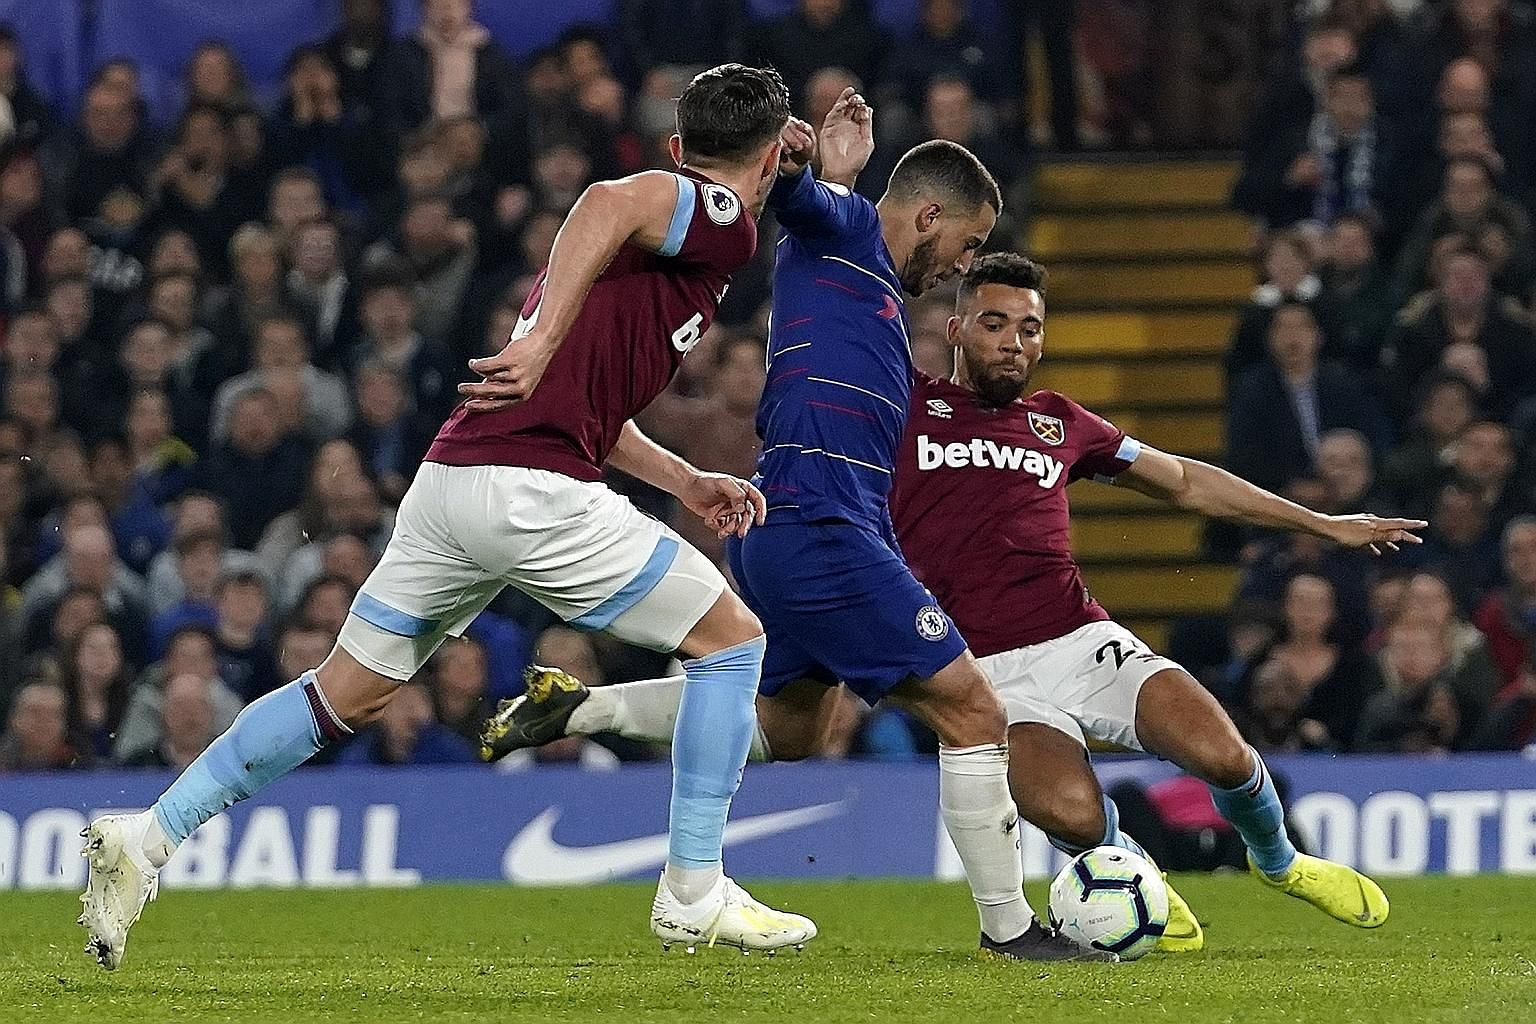 Eden Hazard capping a fine solo run to score Chelsea's opener against West Ham at Stamford Bridge. The Belgian added another to lead the Blues to a 2-0 win and third place in the Premier League.